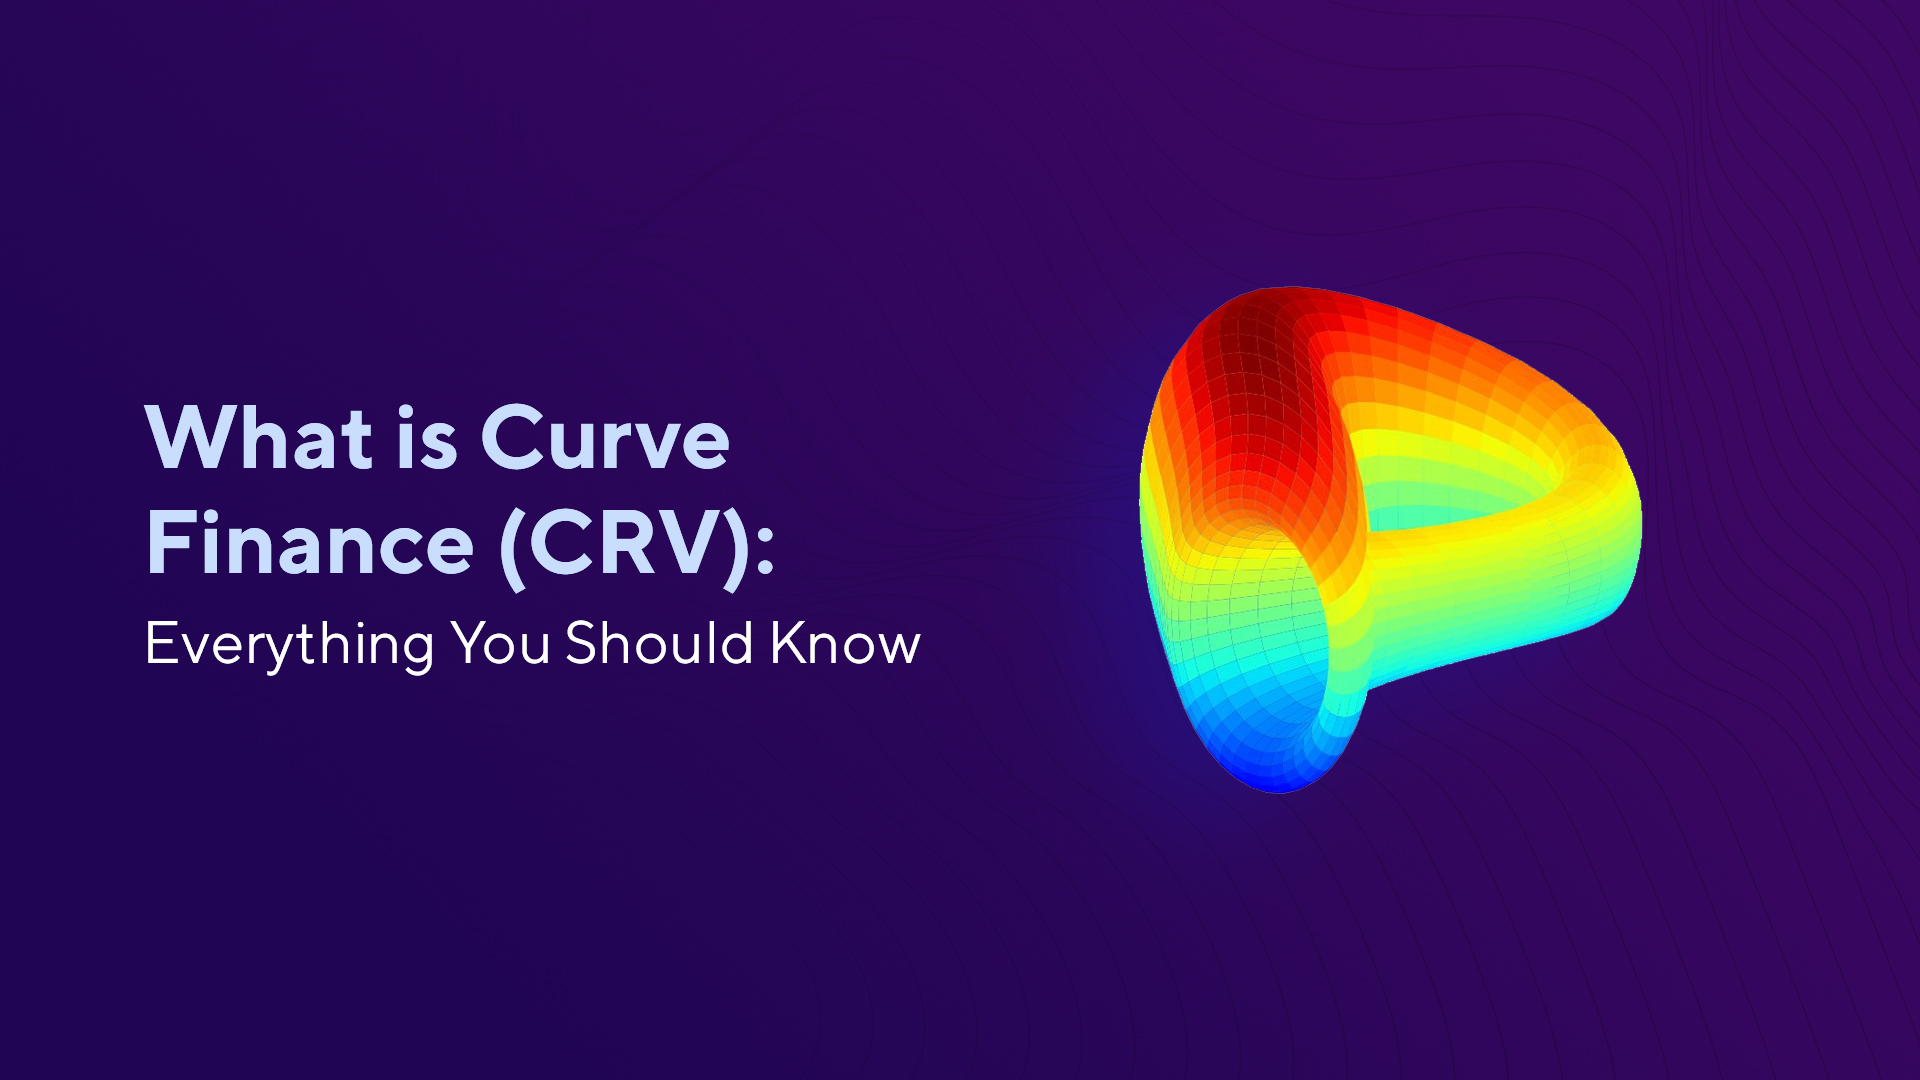 What is Curve Finance (CRV): Everything You Should Know